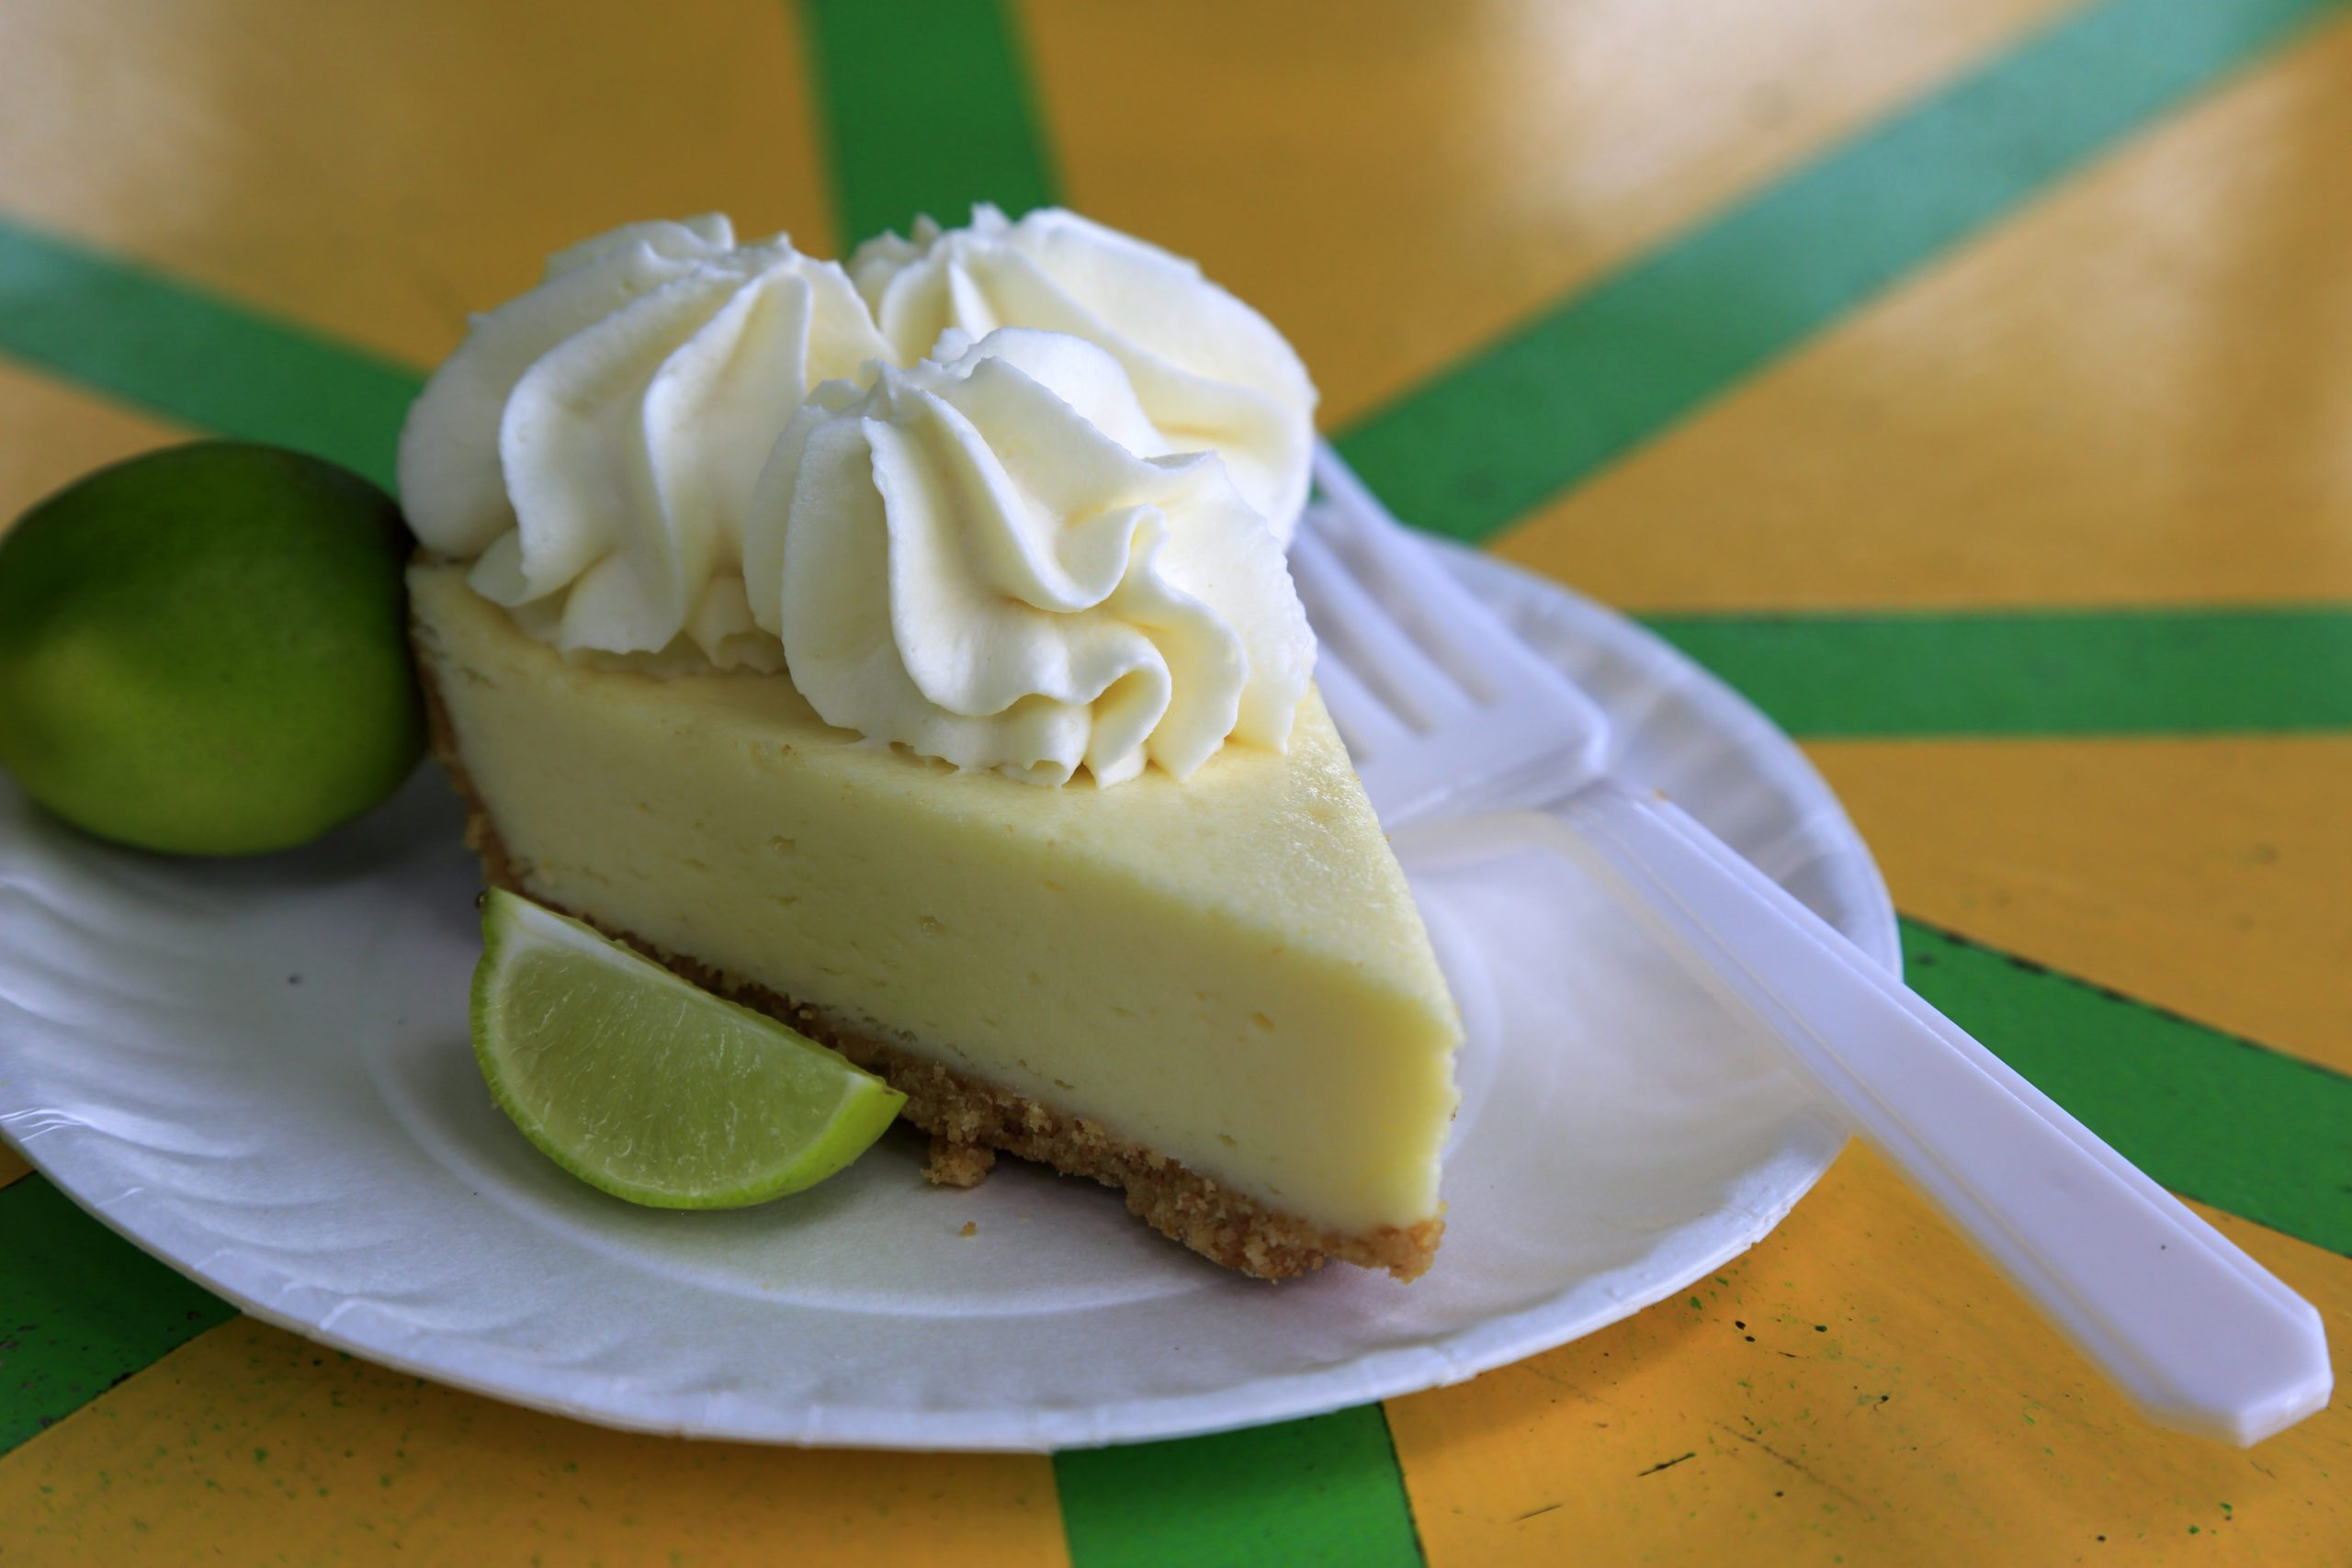 famous Key Lime Pie served in a local restaurant